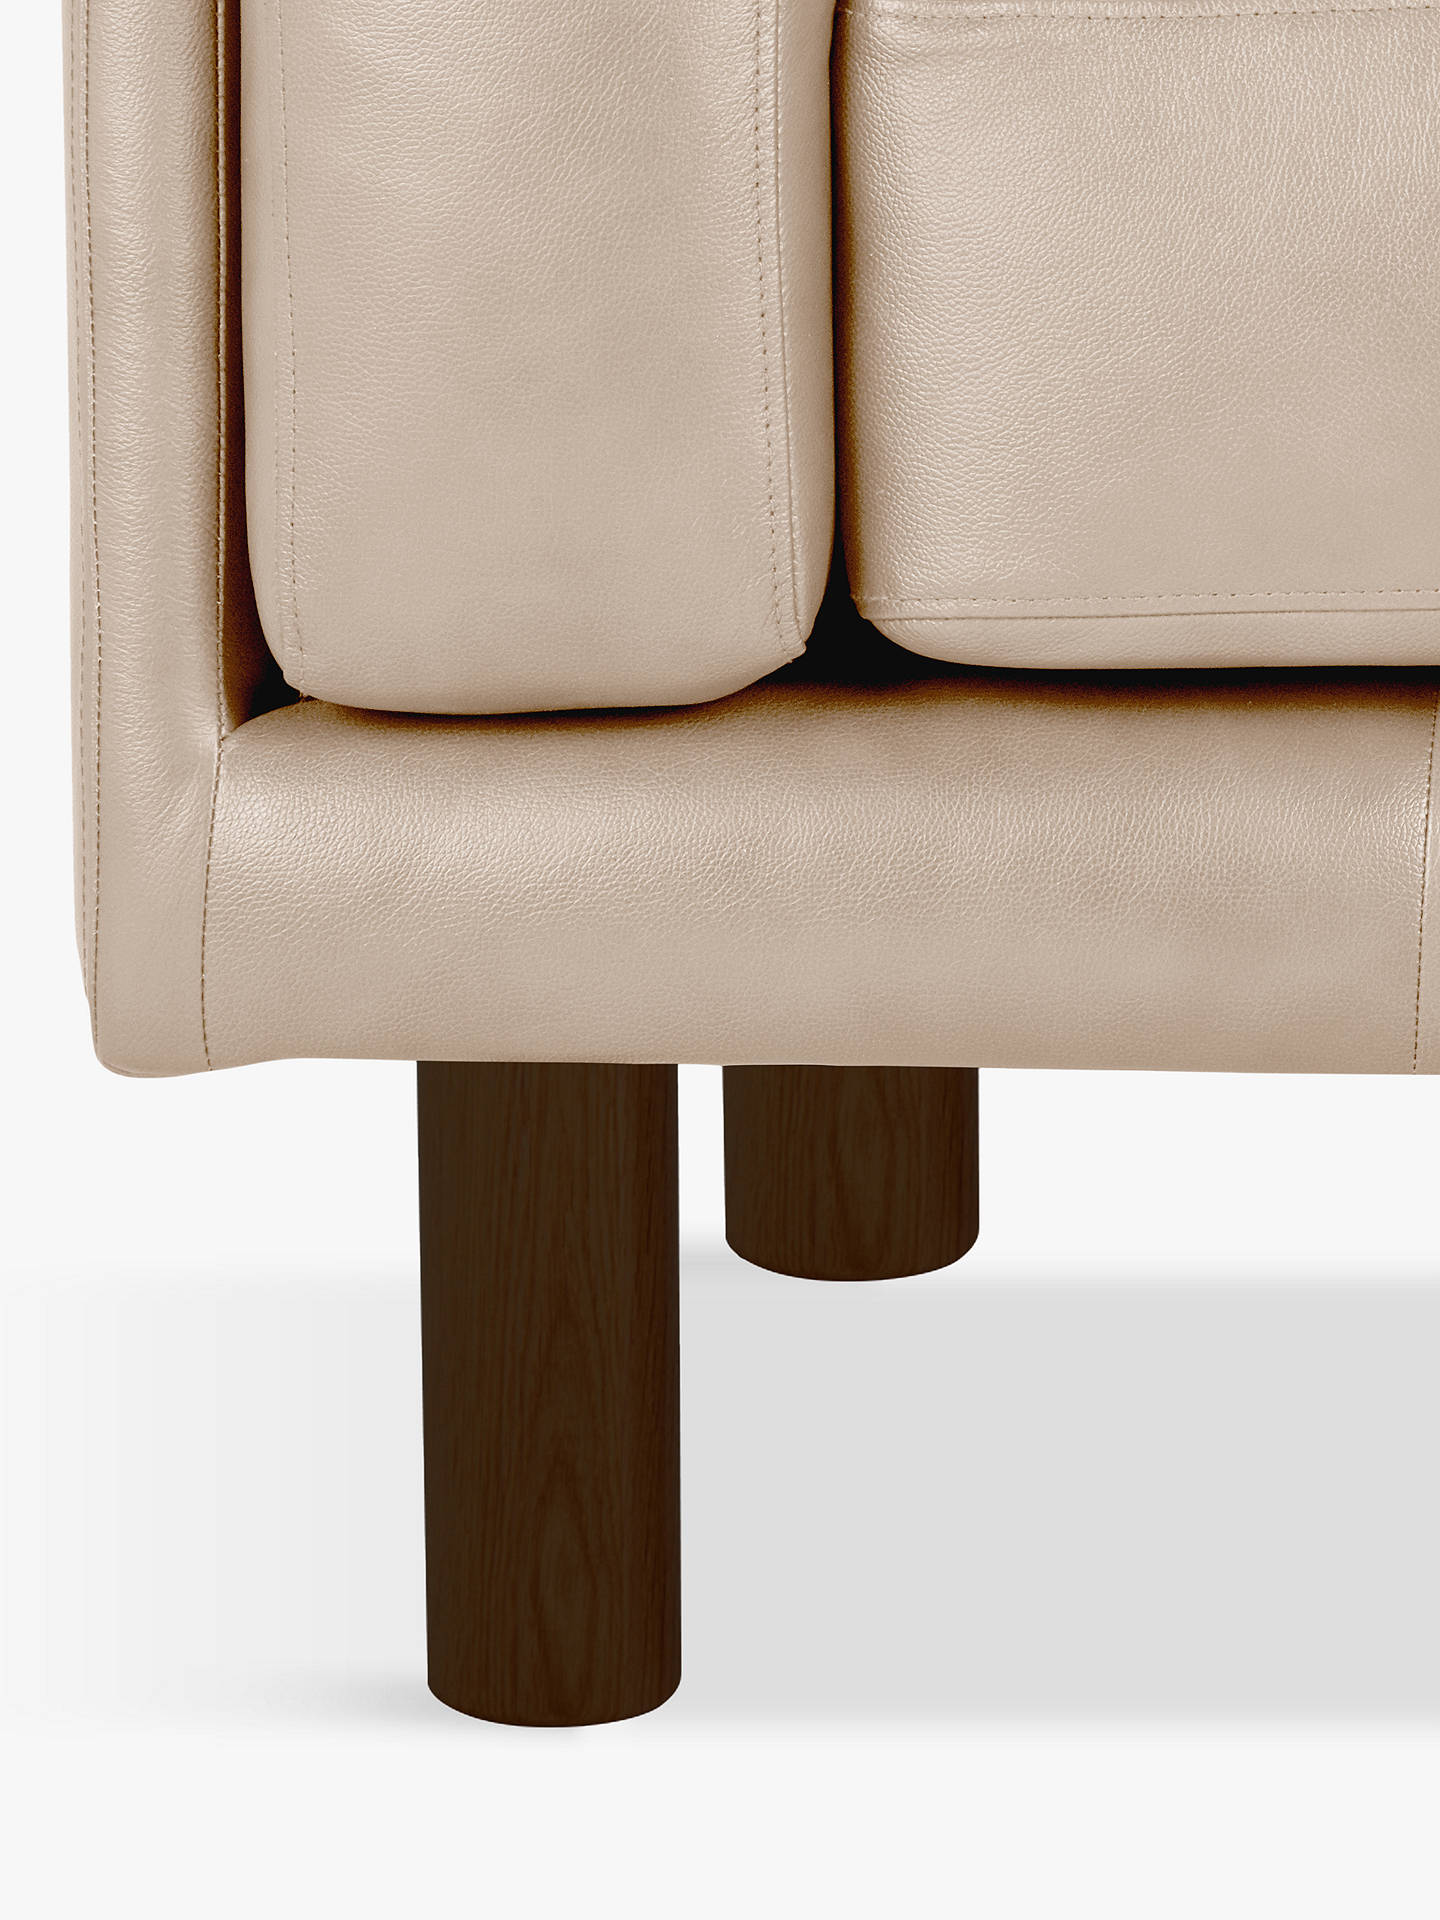 BuyDesign Project by John Lewis No.002 Leather Armchair, Dark Leg, Nature Putty Online at johnlewis.com